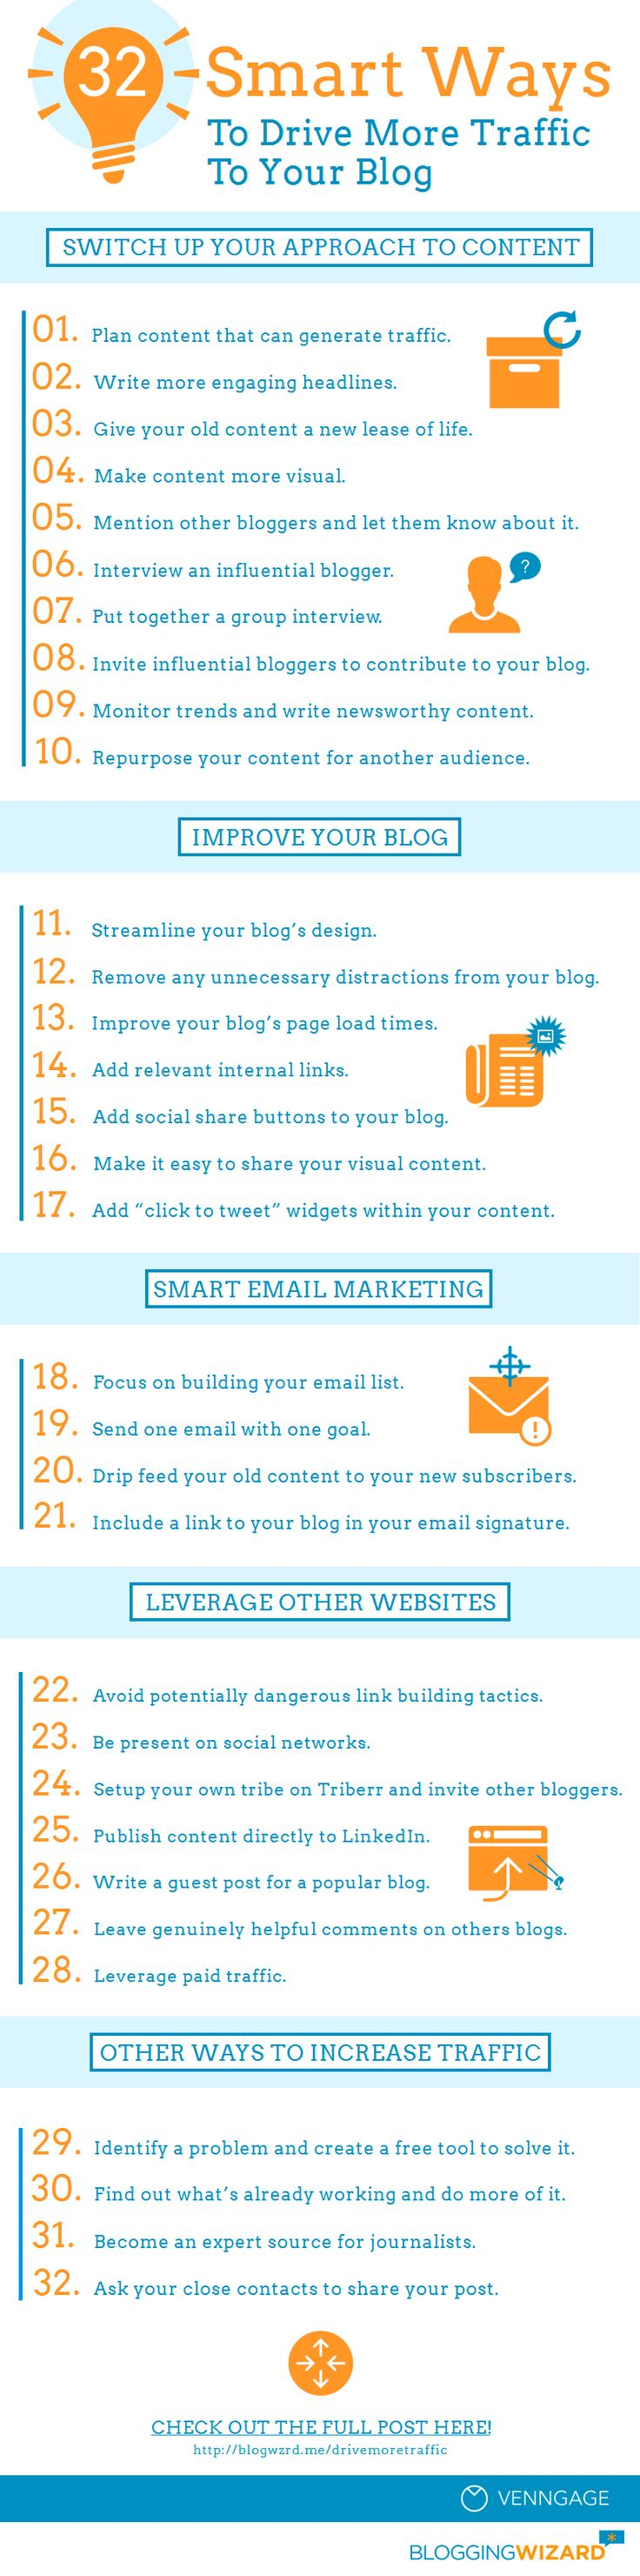 Smart-Ways-To-Drive-More-Traffic-To-Your-Blog-Full.png 820×3.300 pixel